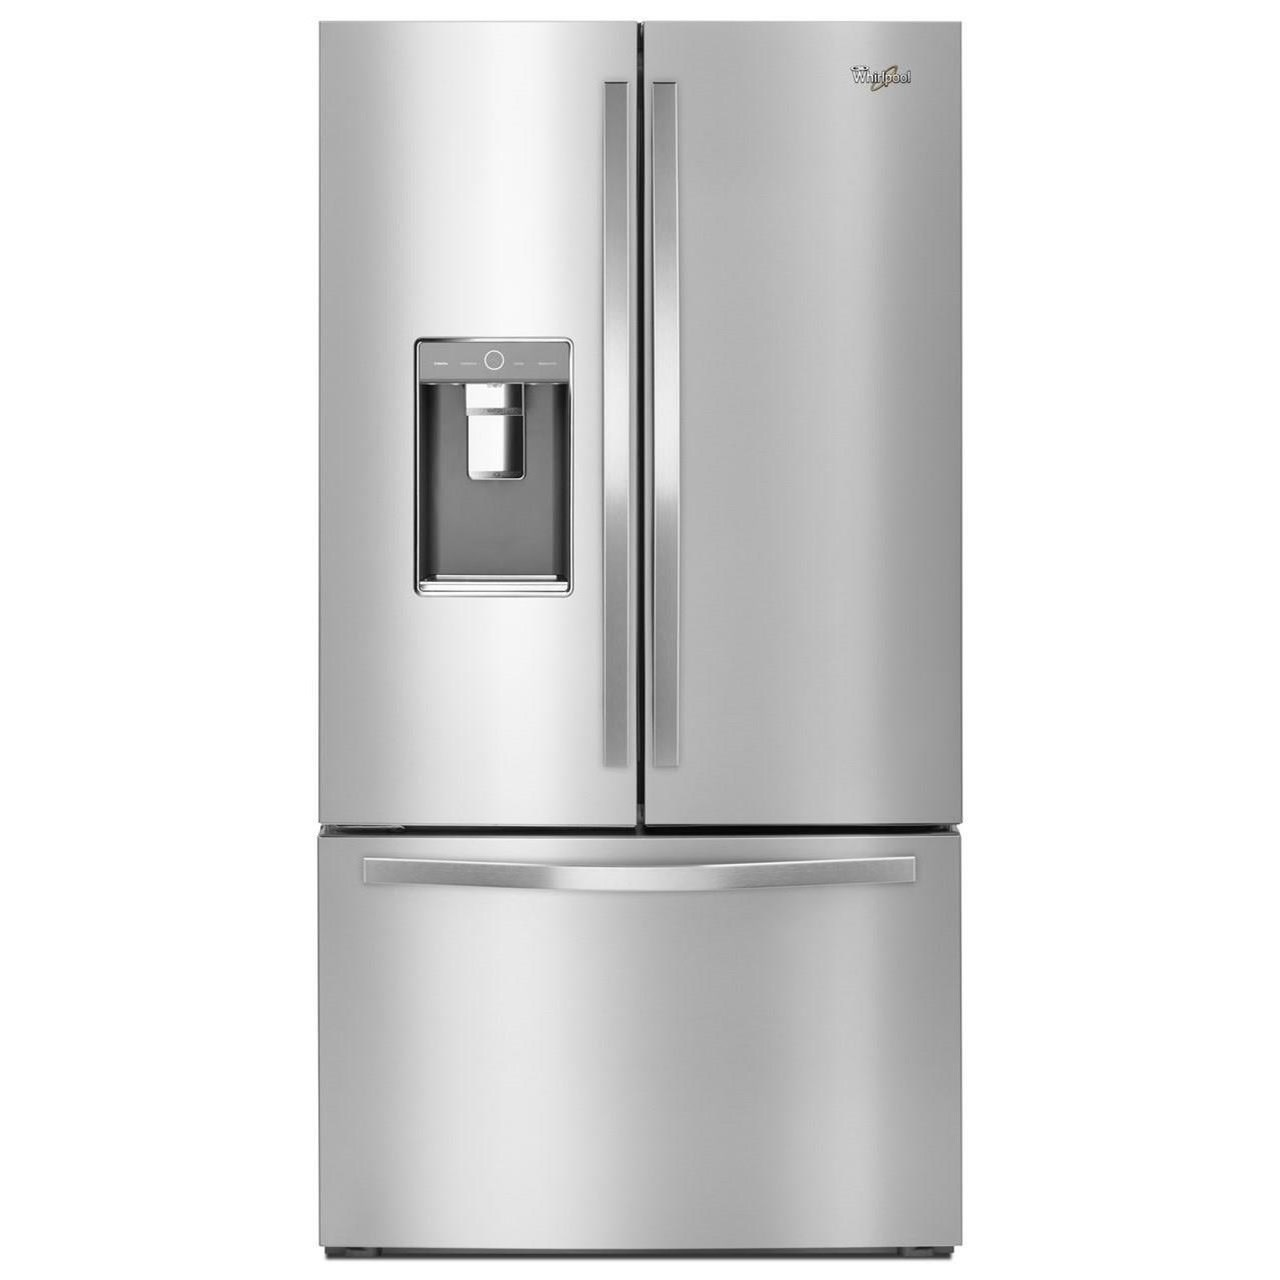 Whirlpool French Door Refrigerators 36-inch Wide French Door Refrigerator - Item Number: WRF995FIFZ